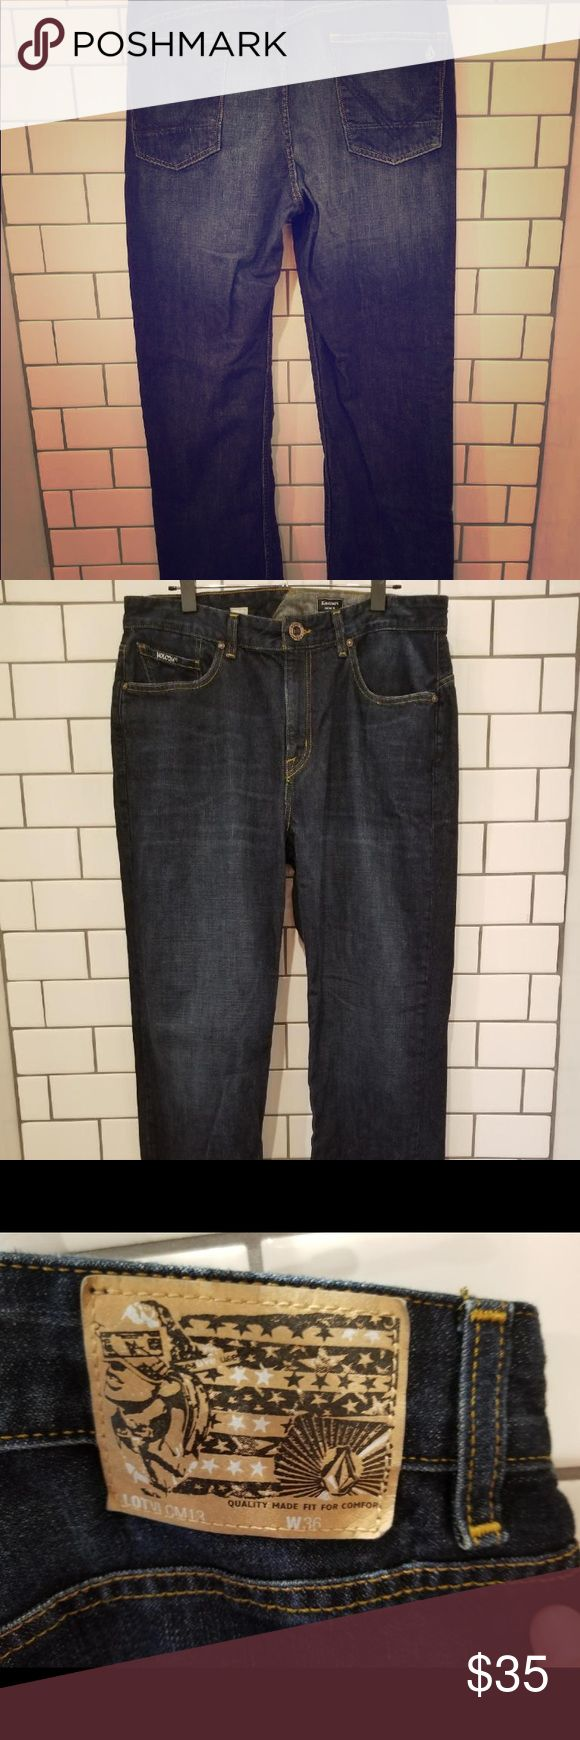 Volcom Men size 36 This jeans were worn a few times. Hubby got chubby!  They are in great condition. See pictures - they have the secret pocket! size 36 width by 31 inseam length. All offers considered. Volcom Jeans Straight